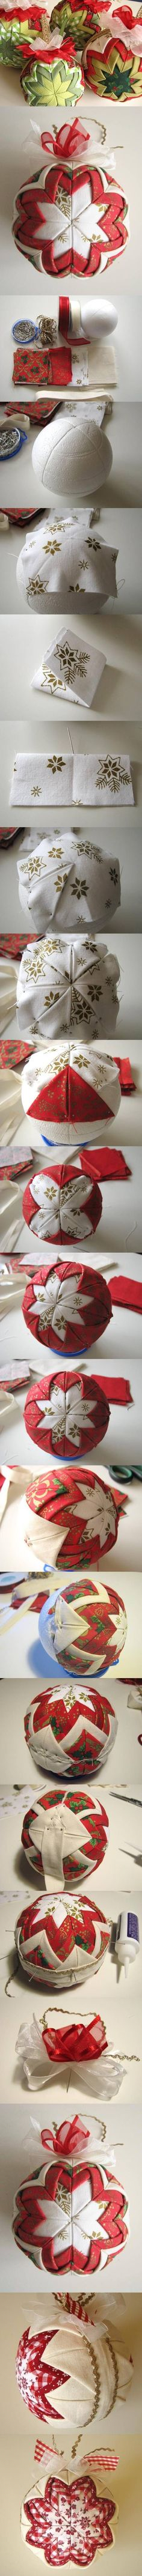 DIY Patchwork for Christmas DIY Patchwork for Christmas by Bohemian Boulevard